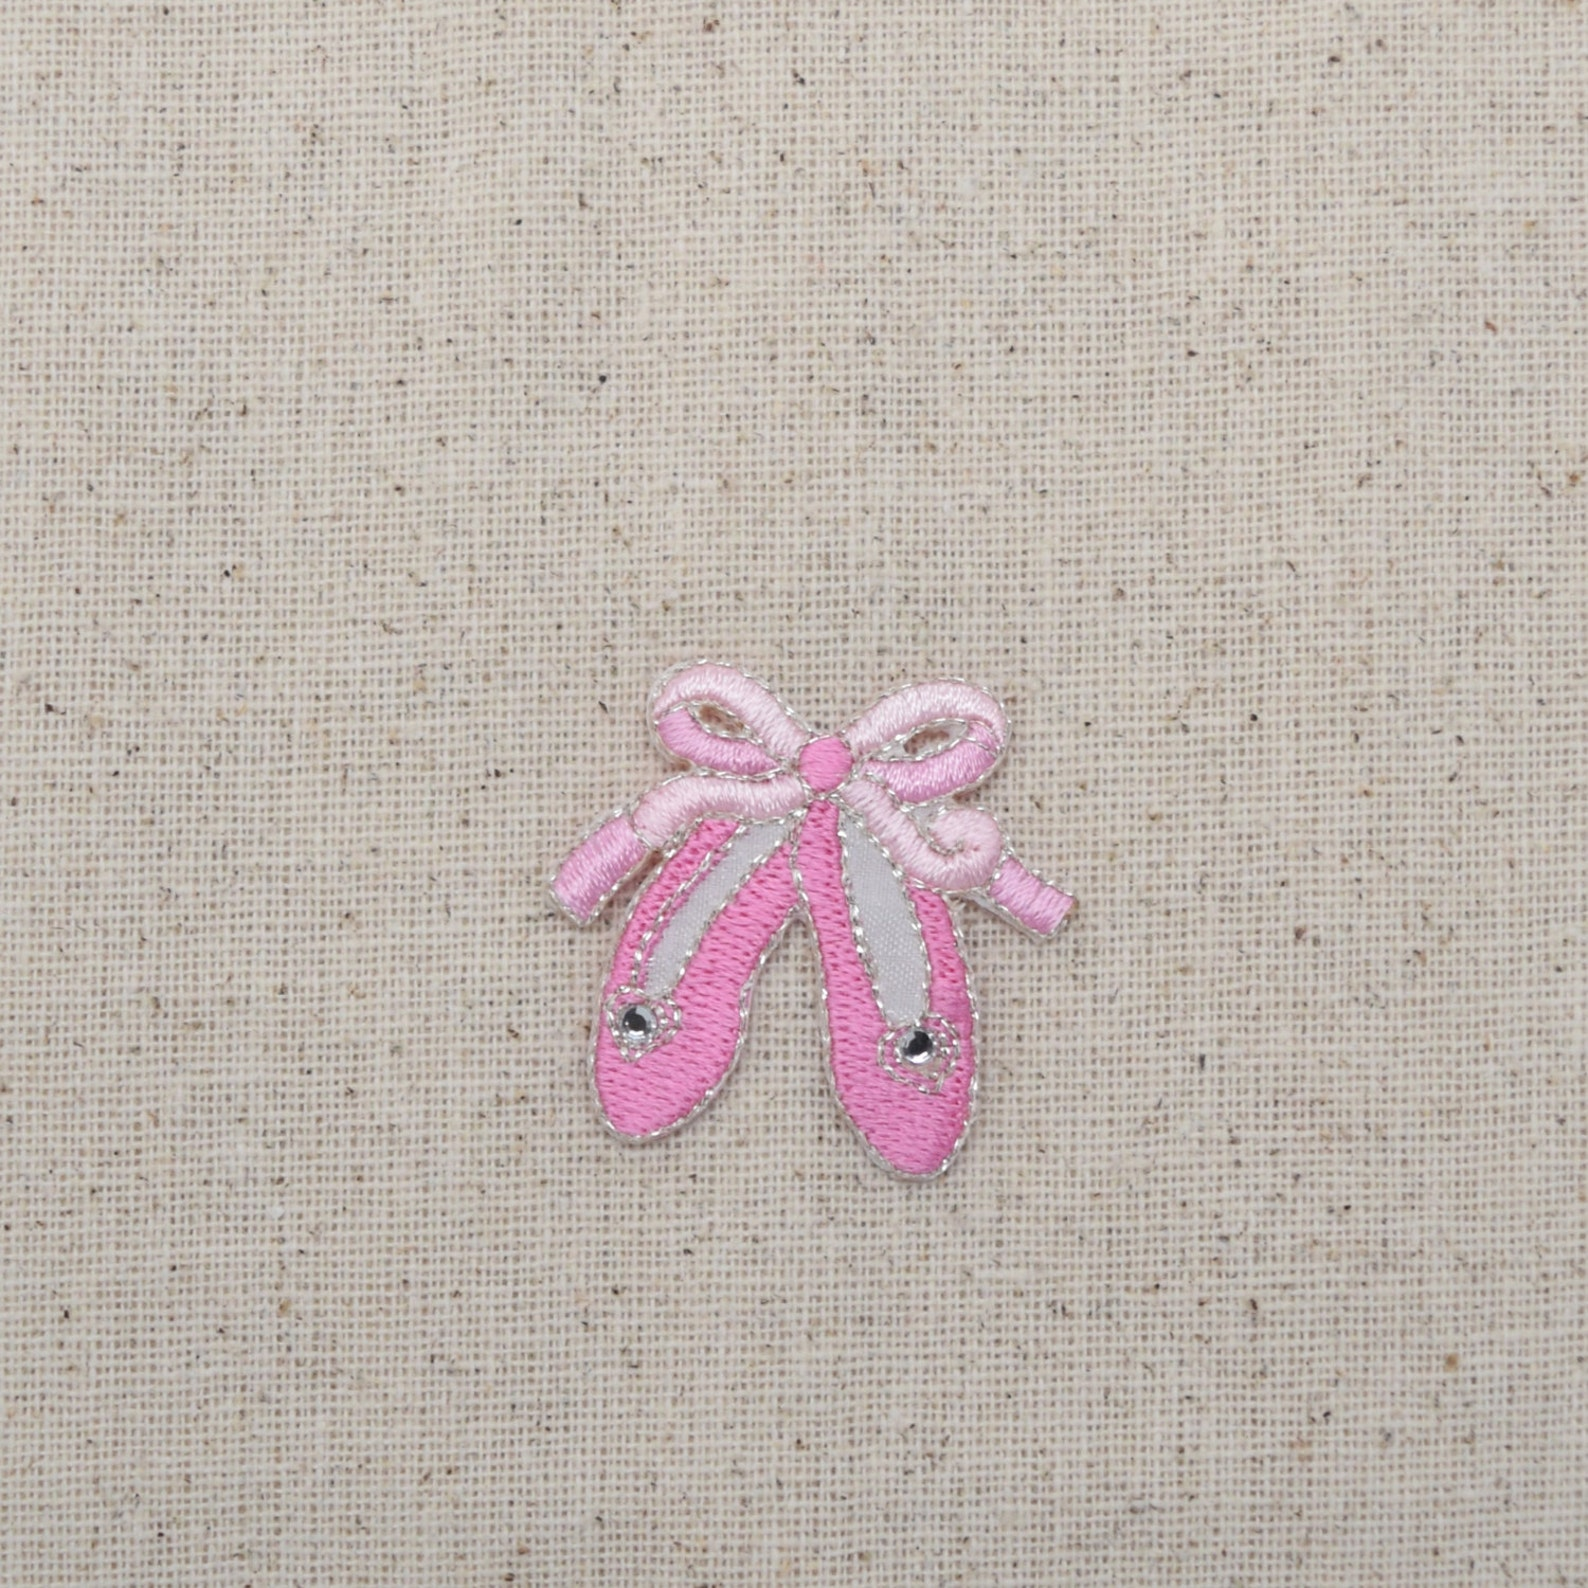 ballet slippers - pink shoes - iron on applique - embroidered patch - 695817-a